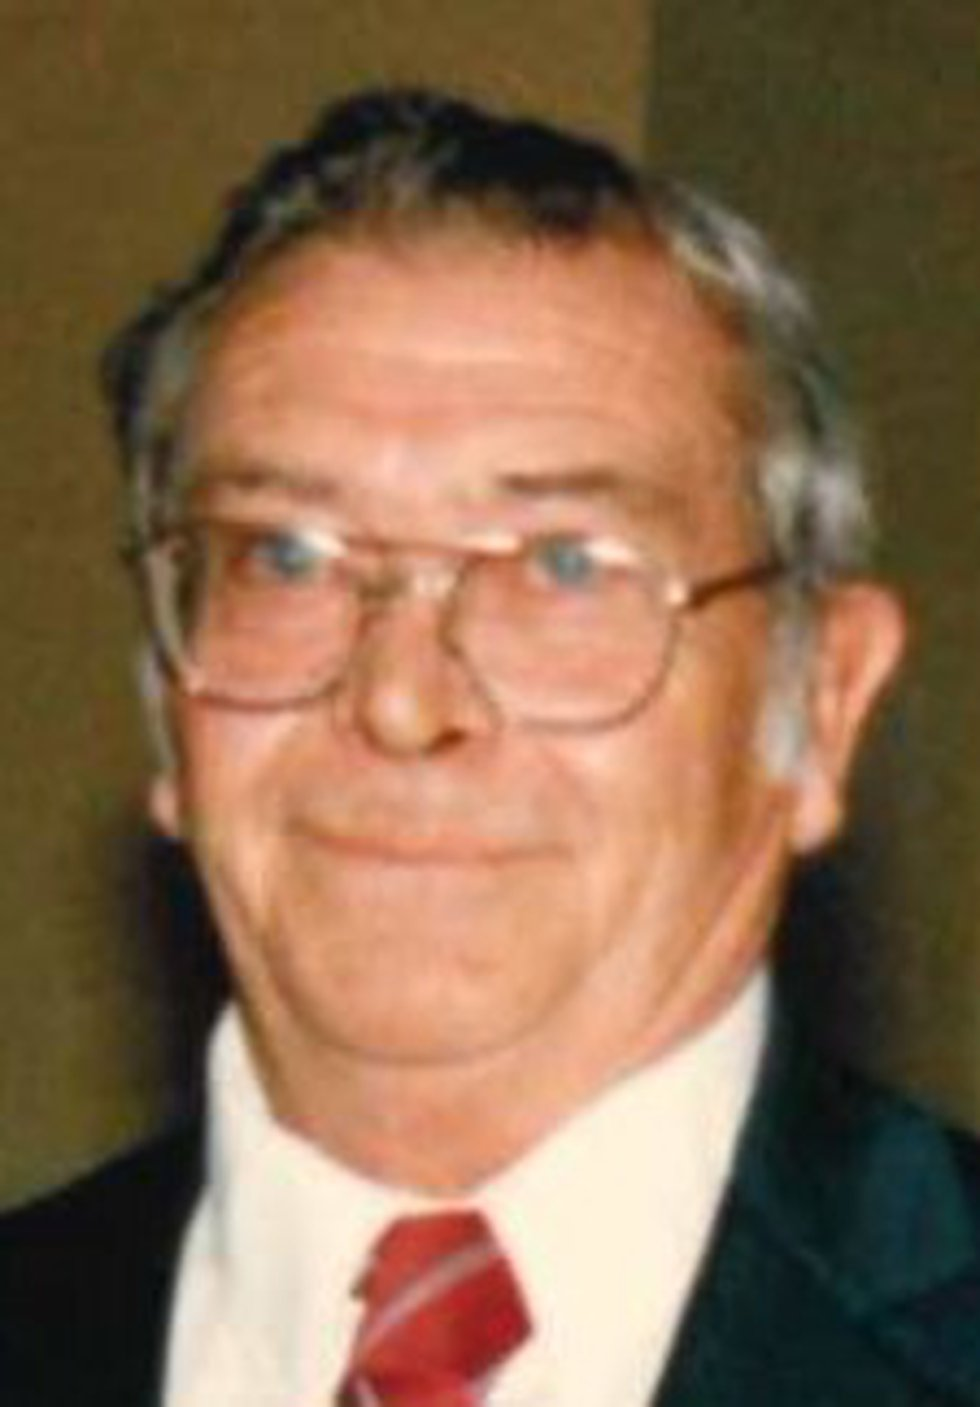 Donald D. Farr, 94, formerly of Strickland Road, passed away on Tuesday, July 20, 2021 at...